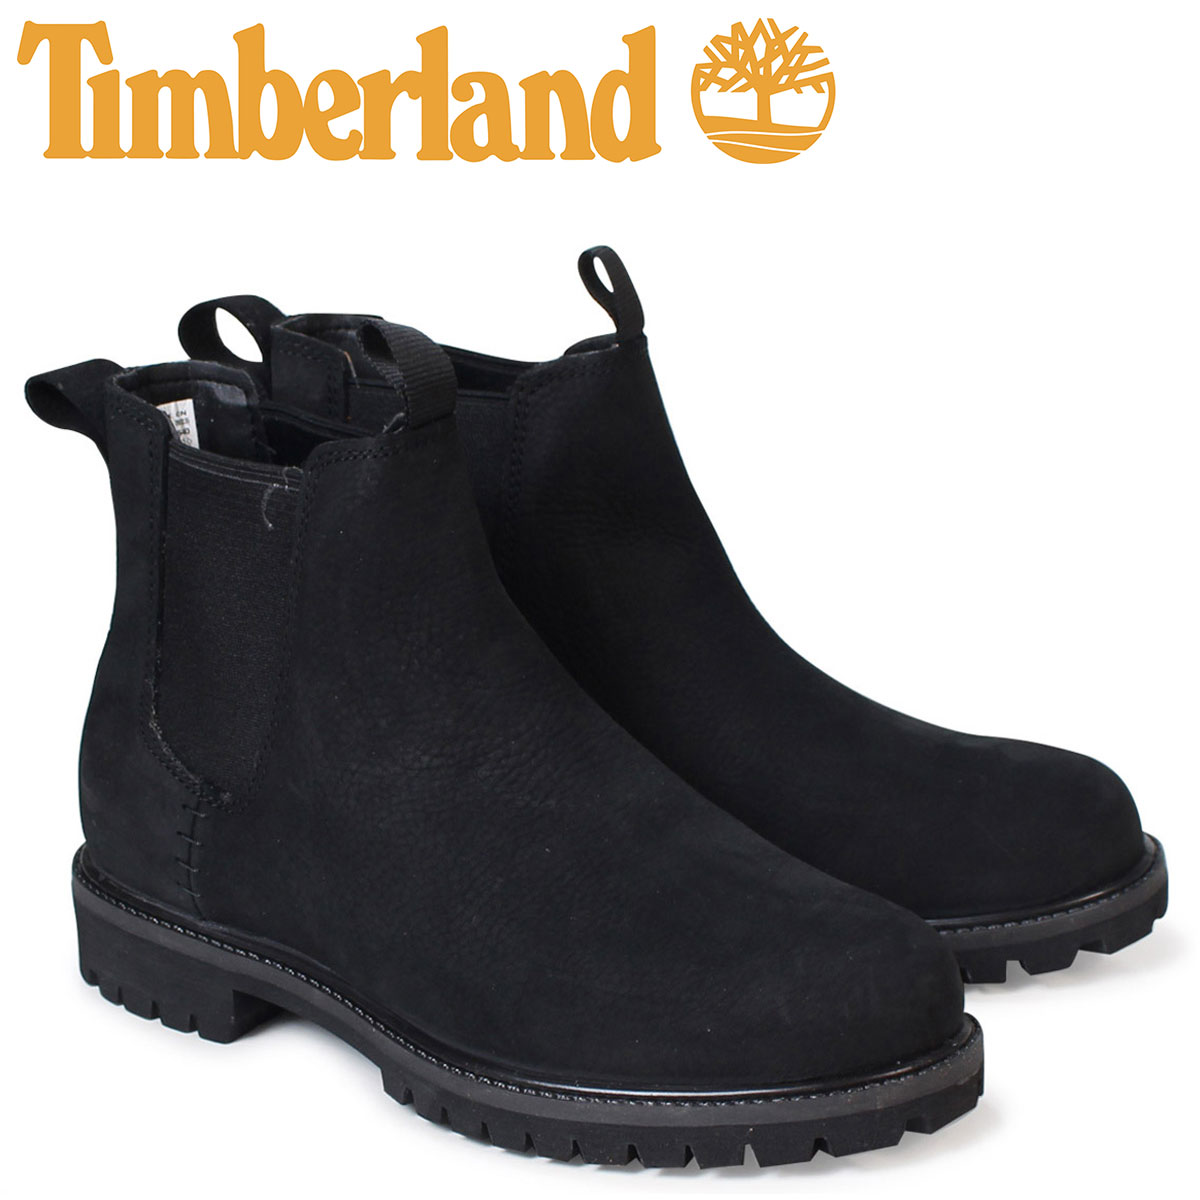 Kjøpe Timberland Boots Canada Online dw8y6Lpb